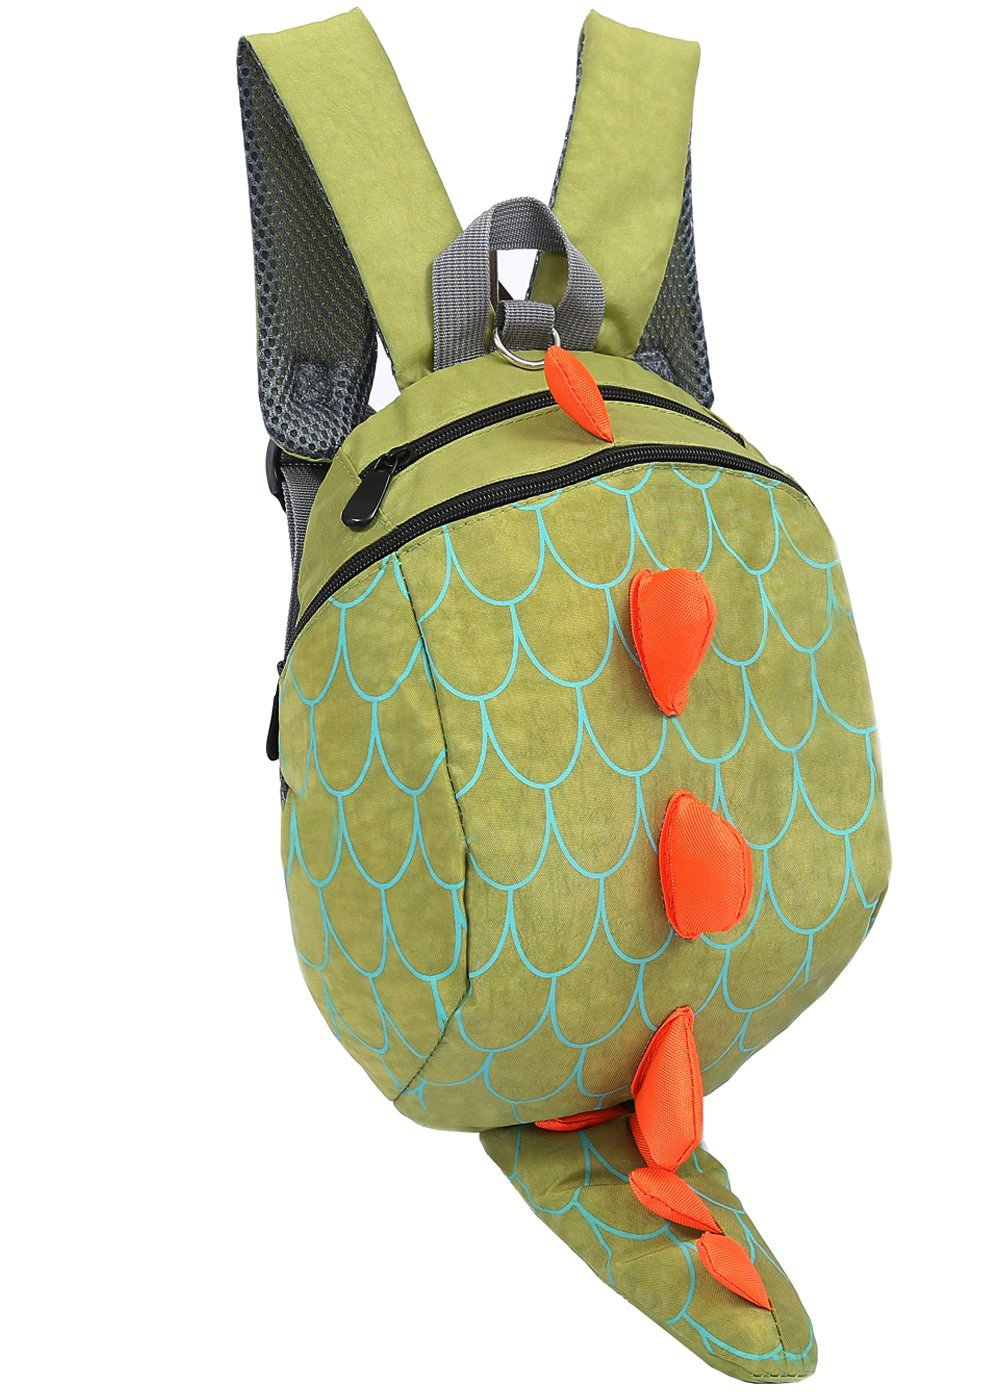 ZHUANNIAN Kids Toddlers Dinosaur Backpack with Safety Leash for Boys Girls(Green)